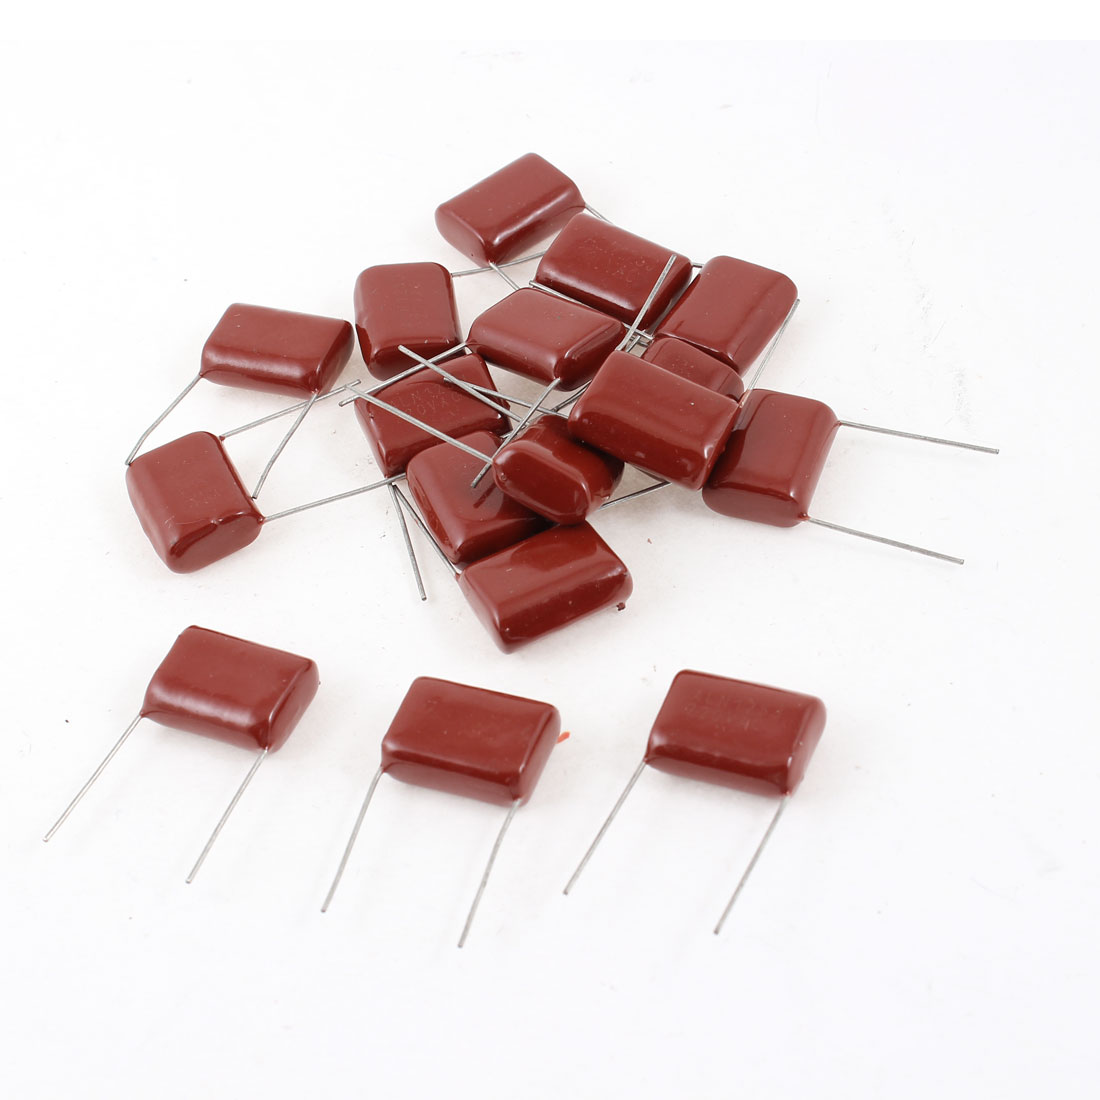 17 Pcs 2 Terminals Lead Mylar Polyester Film Capacitors AC220V DC 400V 1.2uF